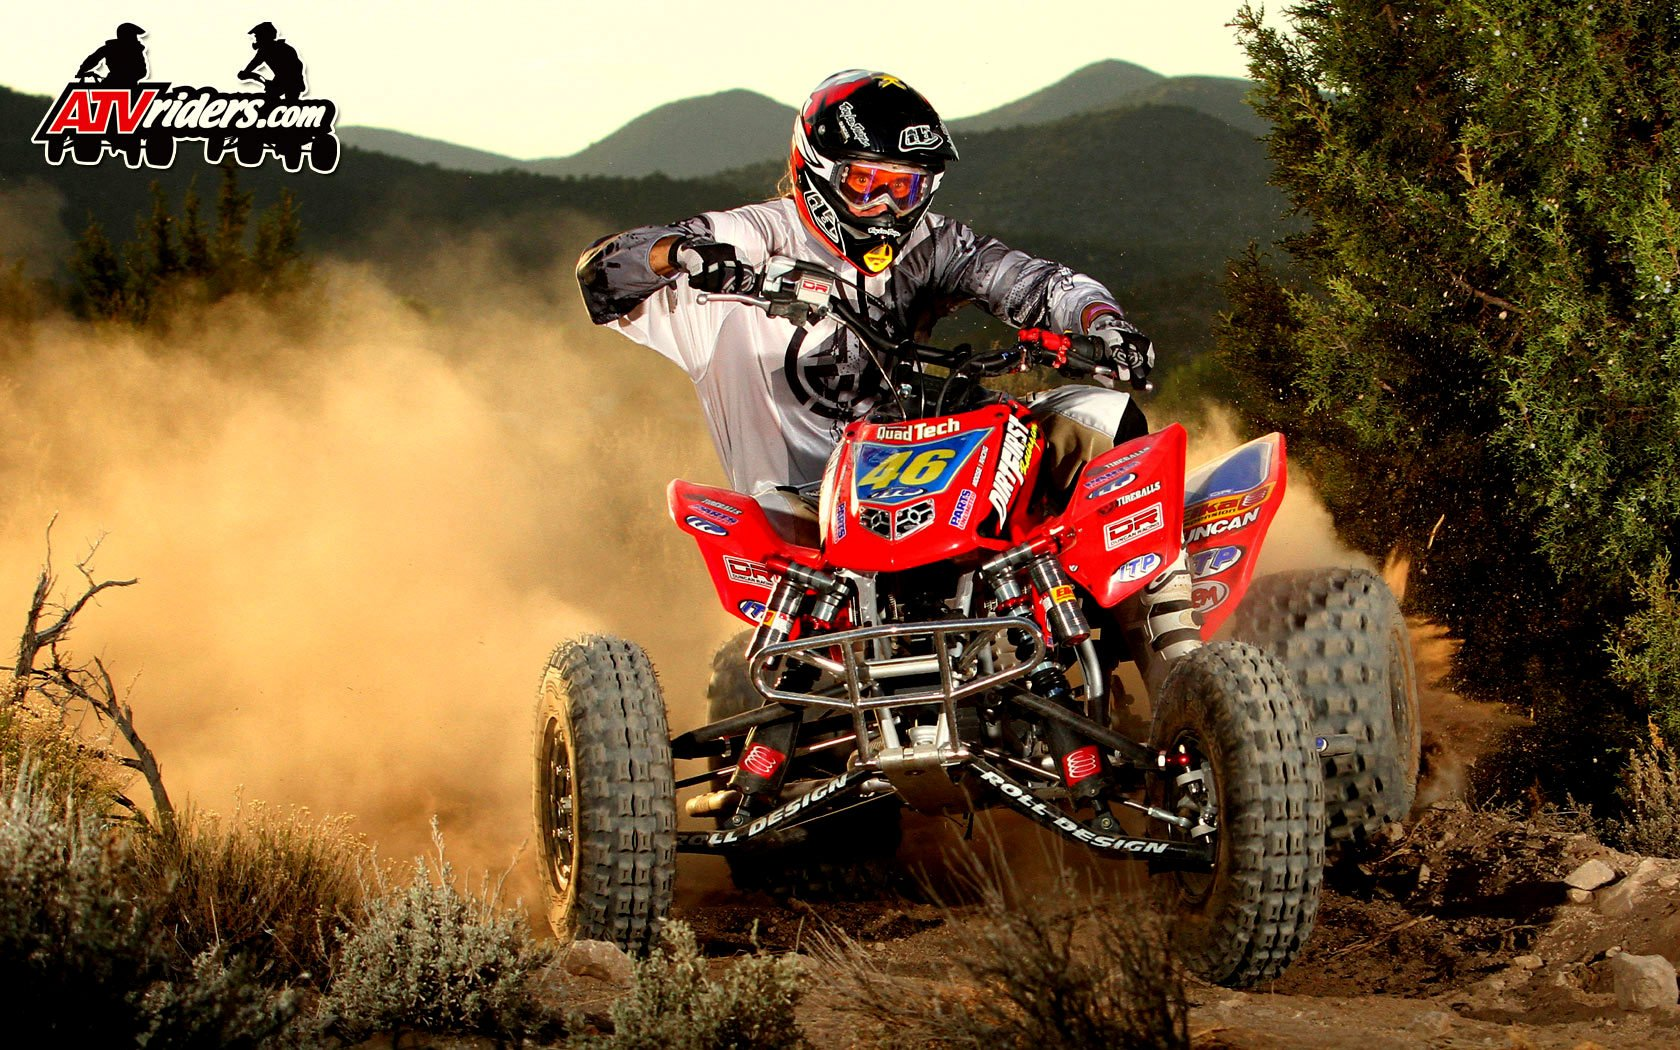 Featured on ATVRiderscom Wednesday Wallpapers Dirt First Racing 1680x1050